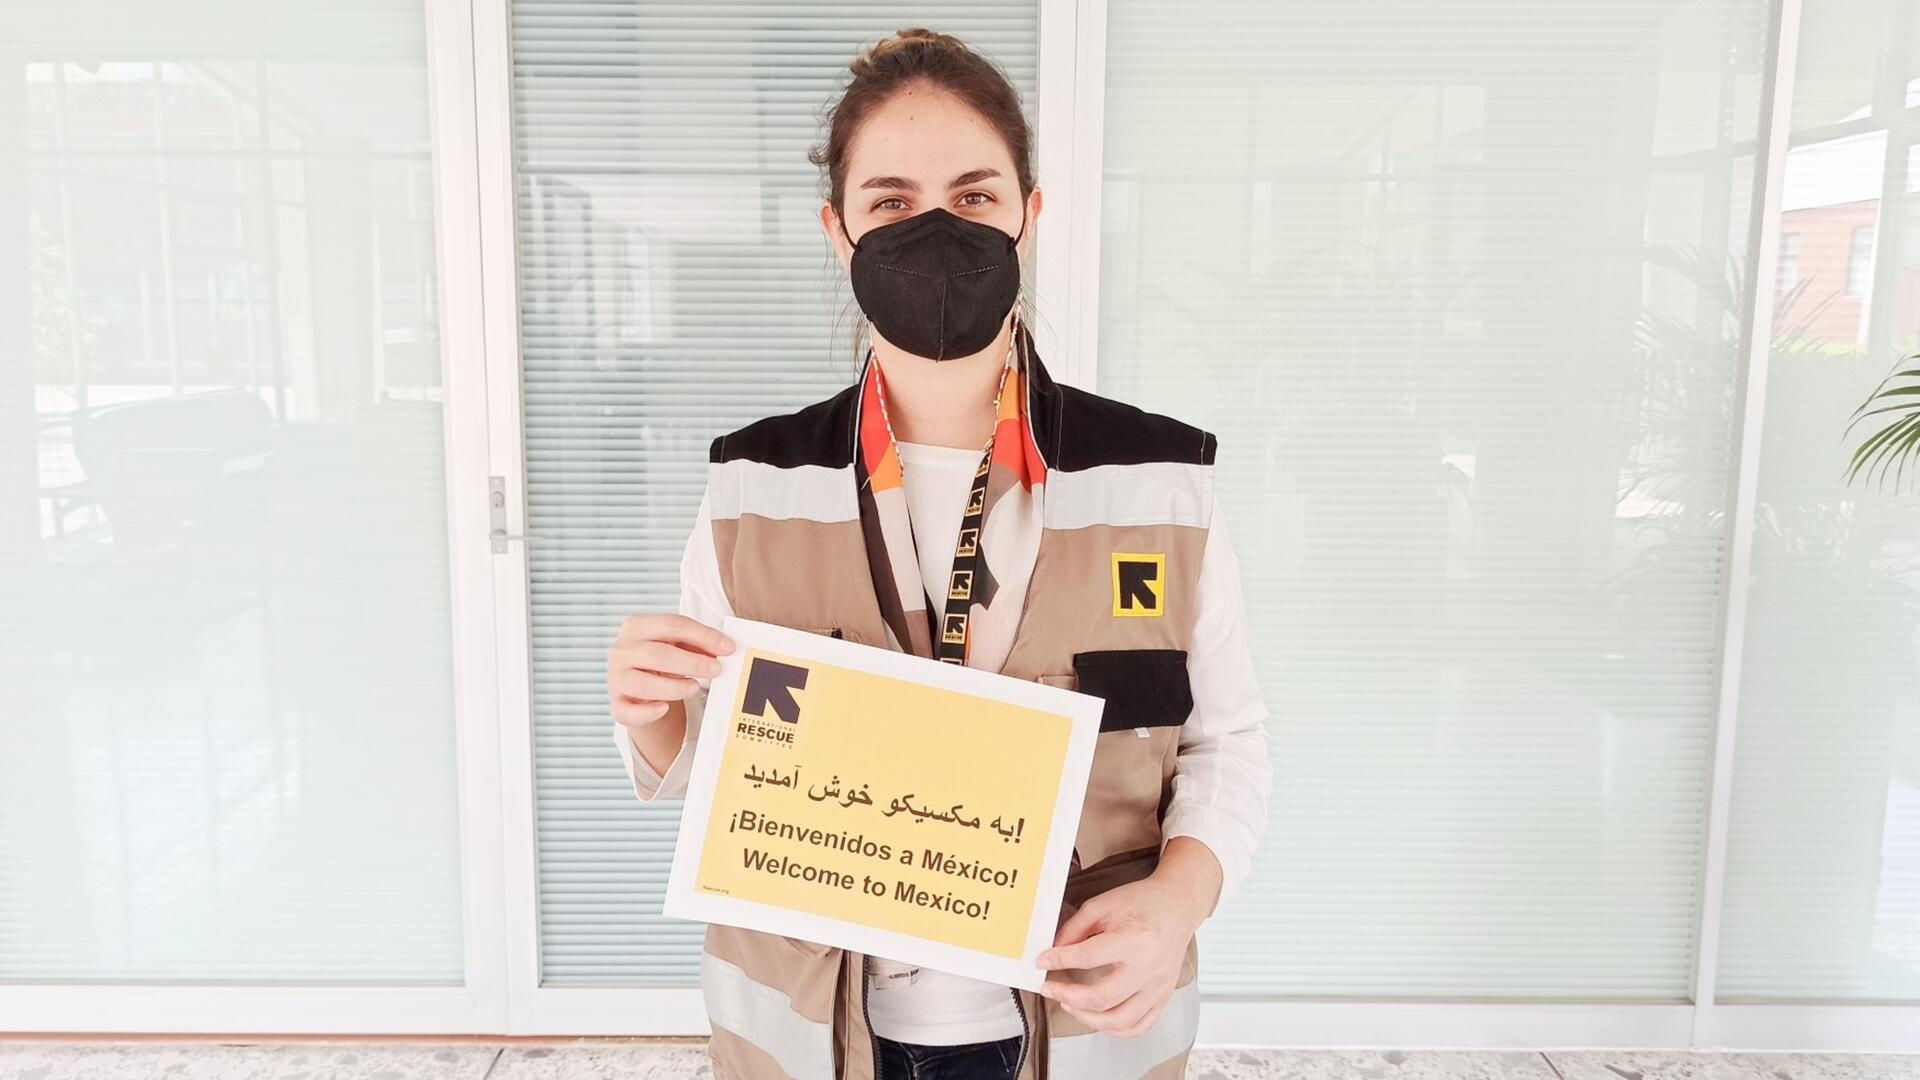 """Fatima, a home visiting officer for the IRC in Mexico, holds a sign that says """"welcome to Mexico"""" in English, Spanish and Dari. She is wearing a mask and an IRC vest."""